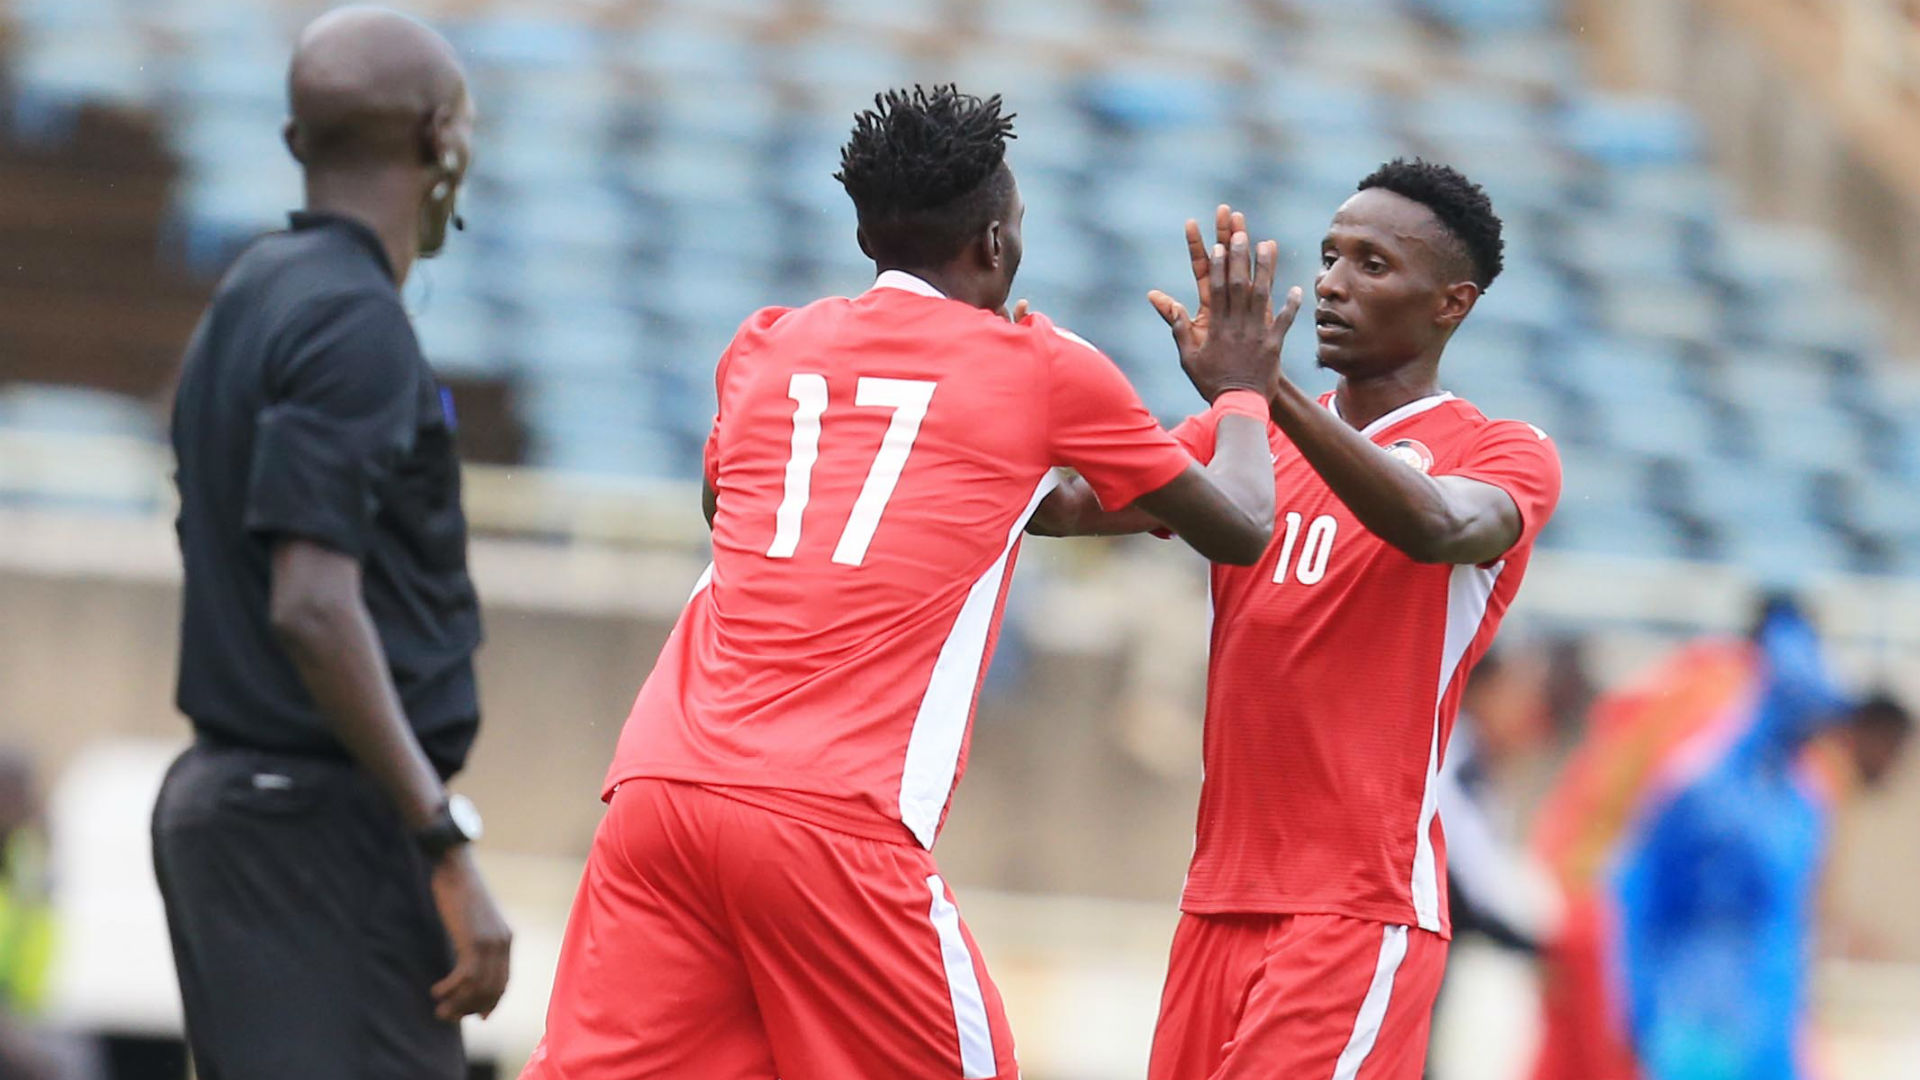 Afcon 2021 Qualifiers: Five key players for Kenya vs Egypt